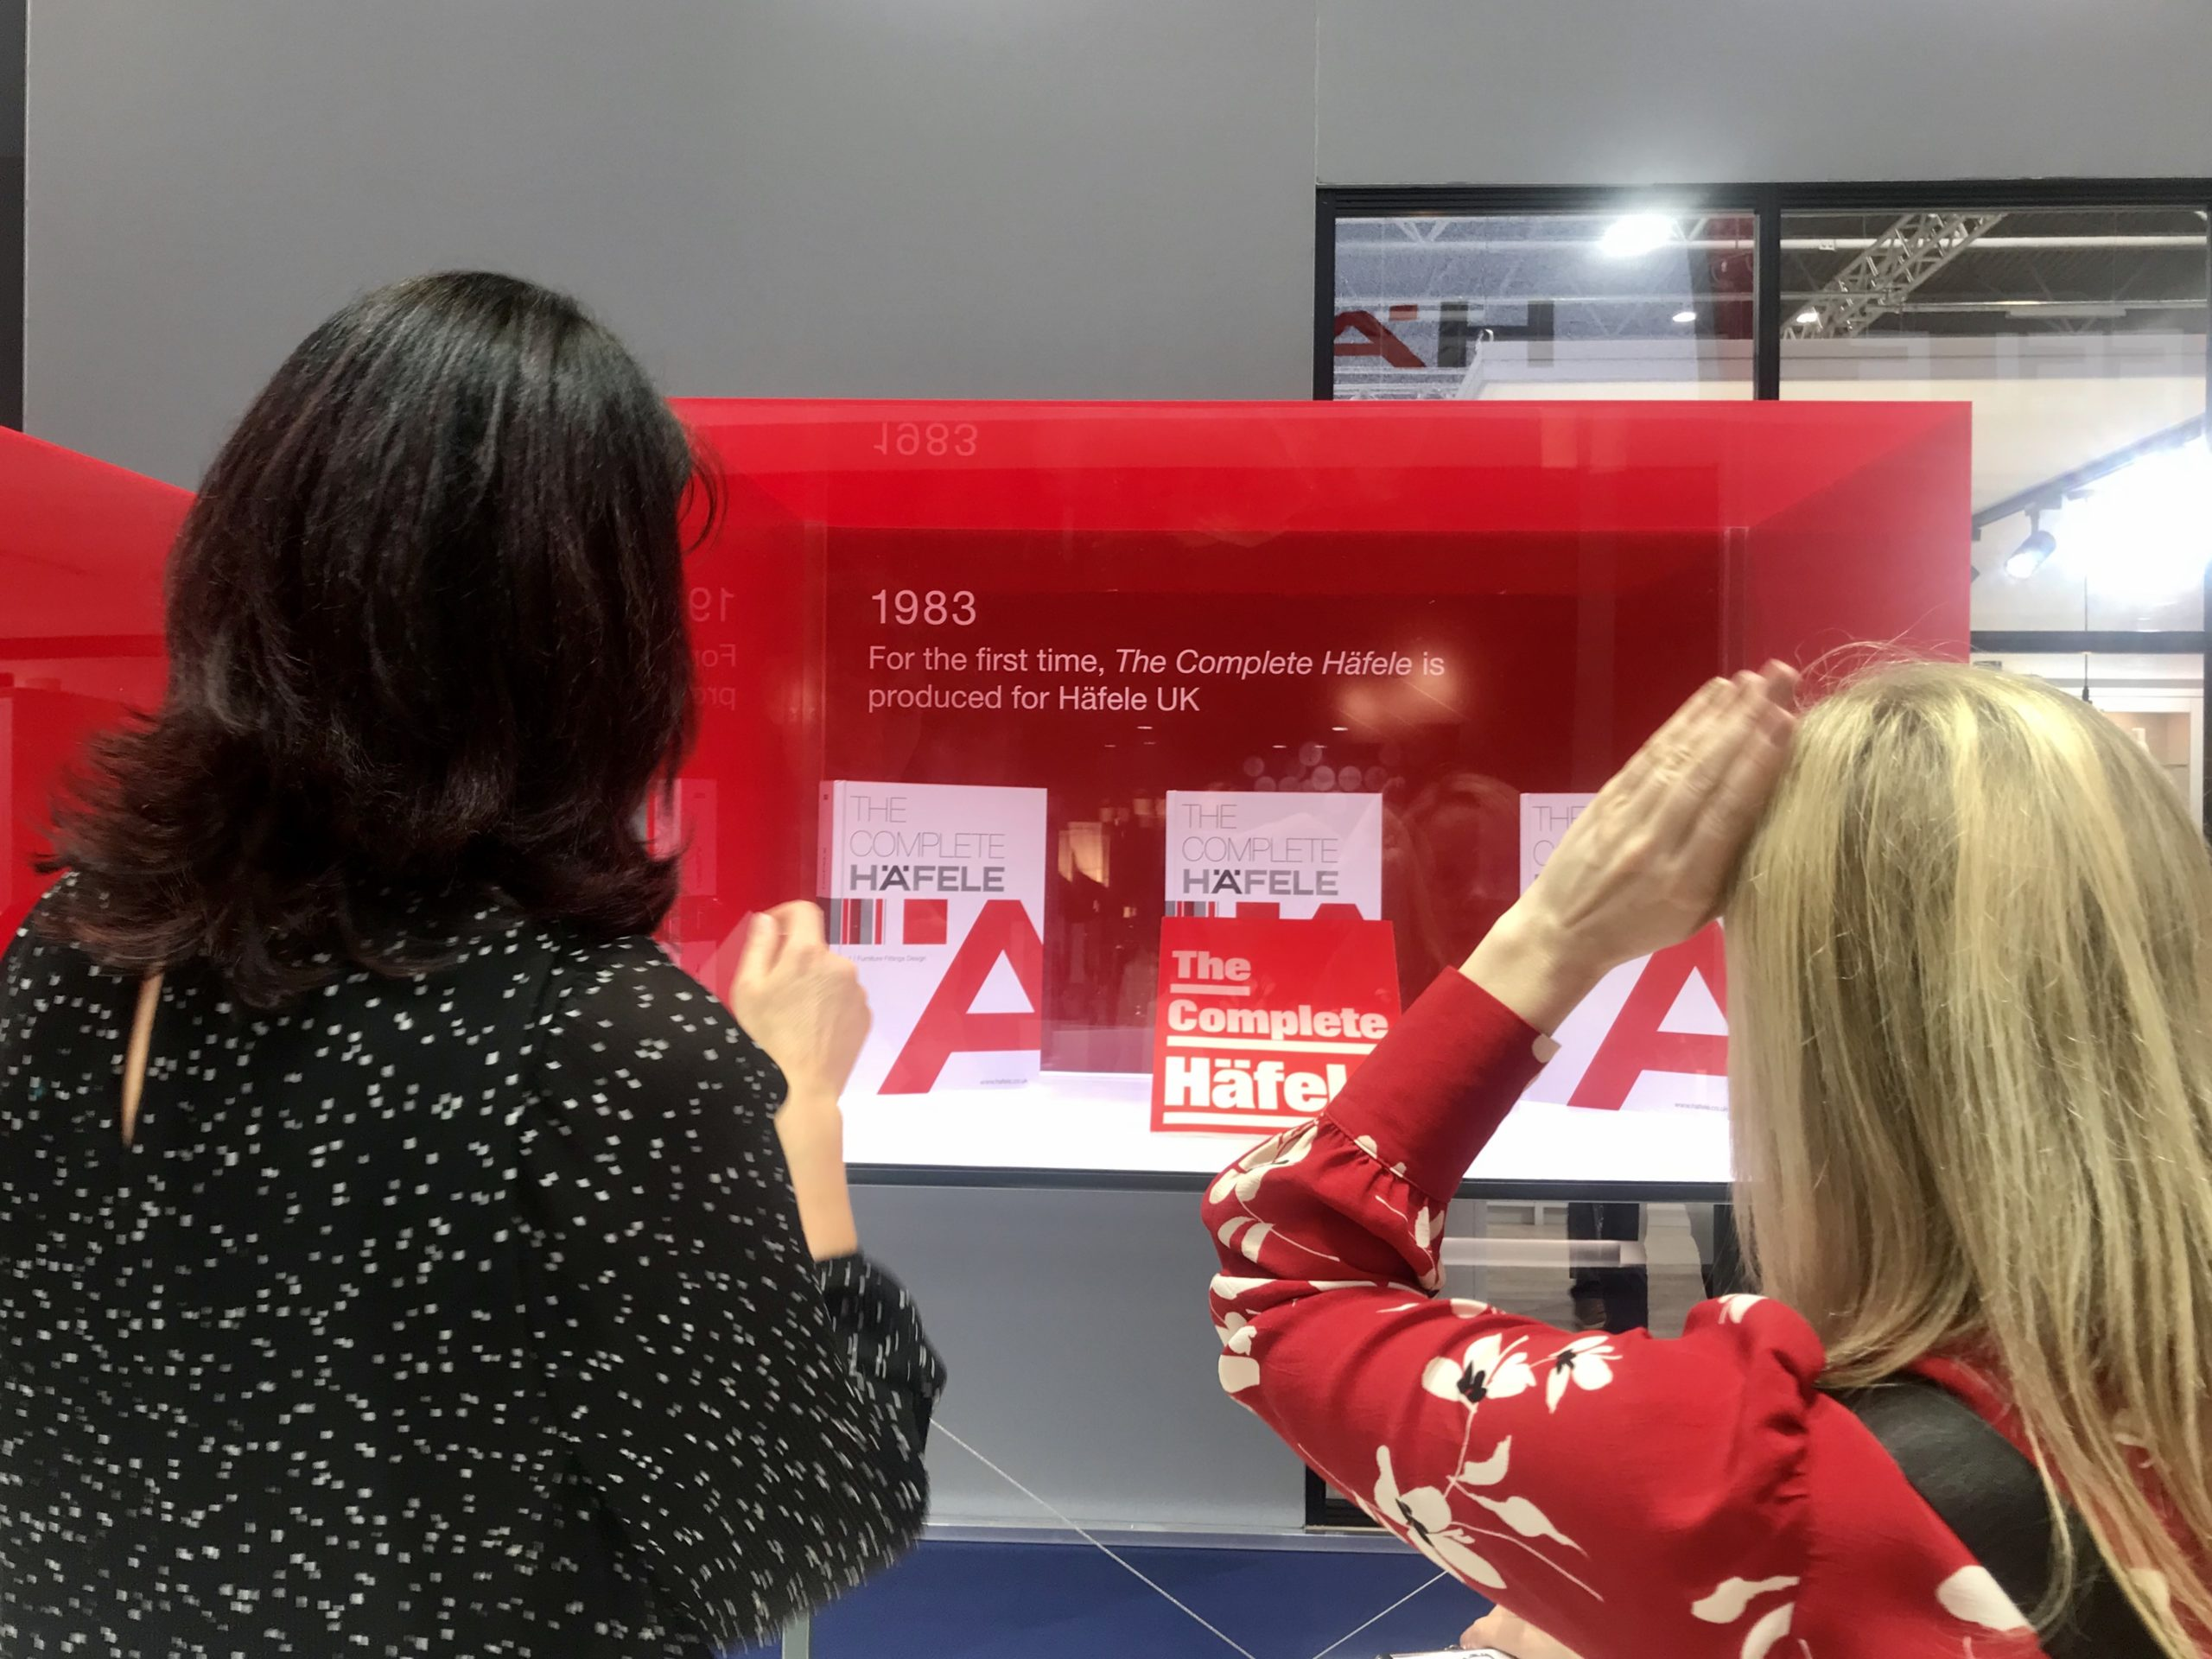 The editor of kbbreview checks out the Häfele timeline at kbb2020 - media relations and press office activity at exhibitions